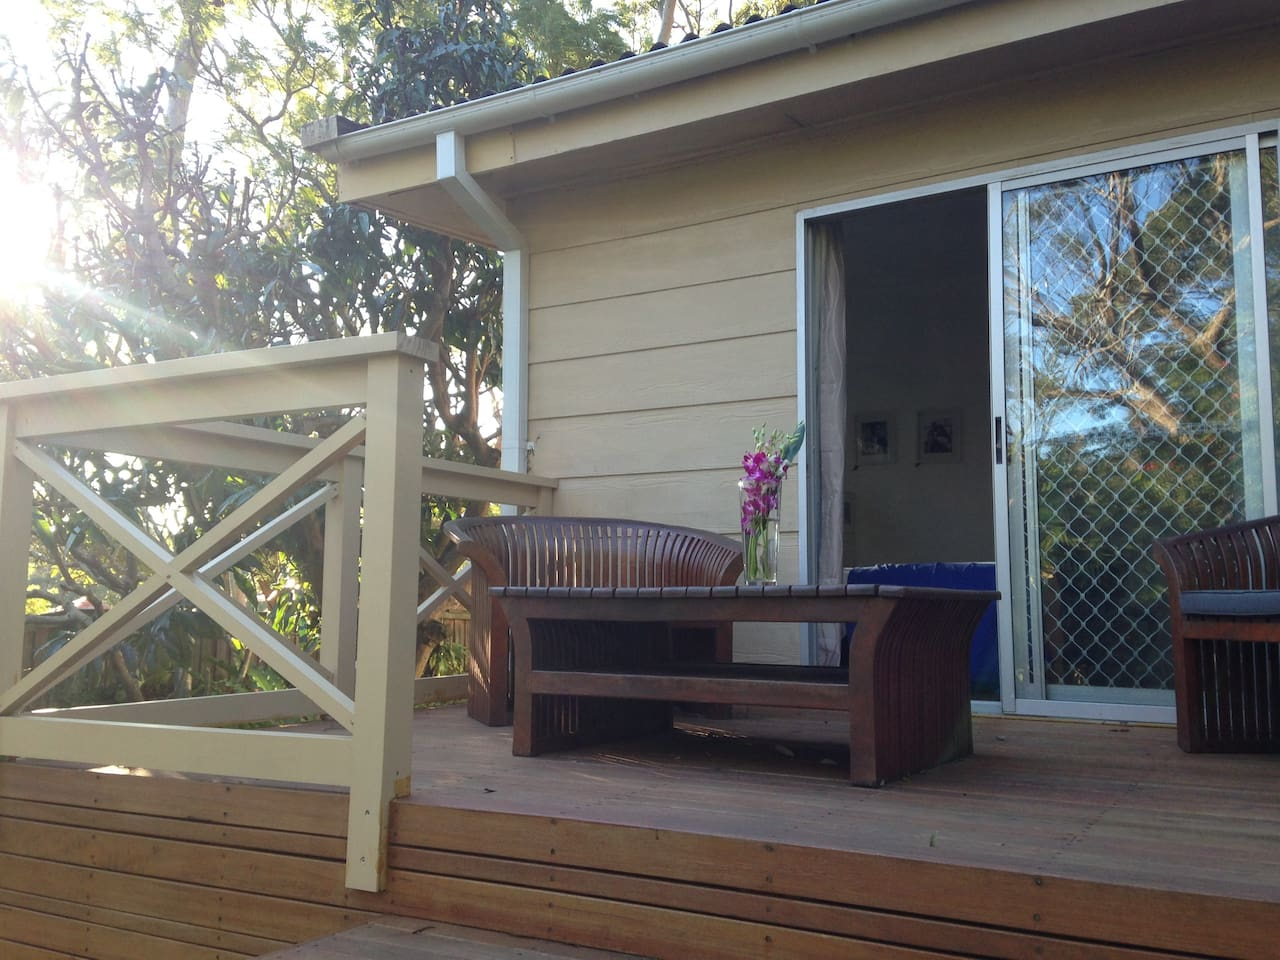 Serene back deck that opens up to the master bedroom. A lovely area to enjoy at any time of the year.